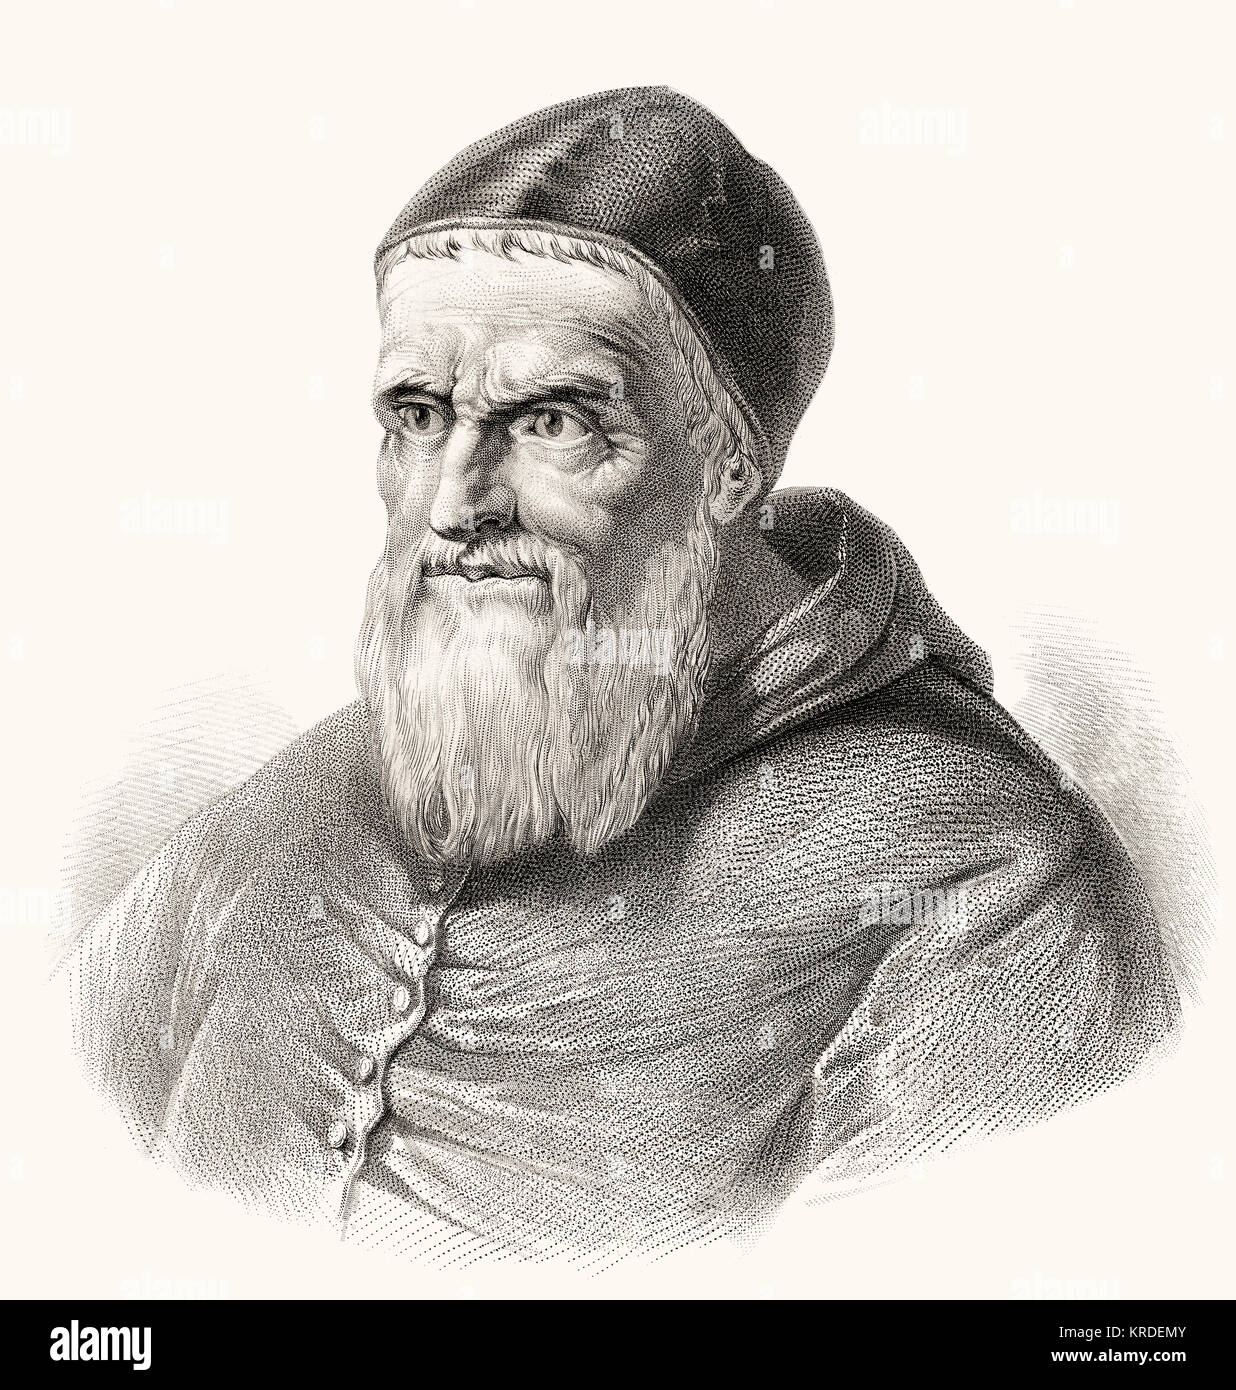 Pope Julius II, 1443 – 21 February 1513, Pope from 1 November 1503 to his death - Stock Image